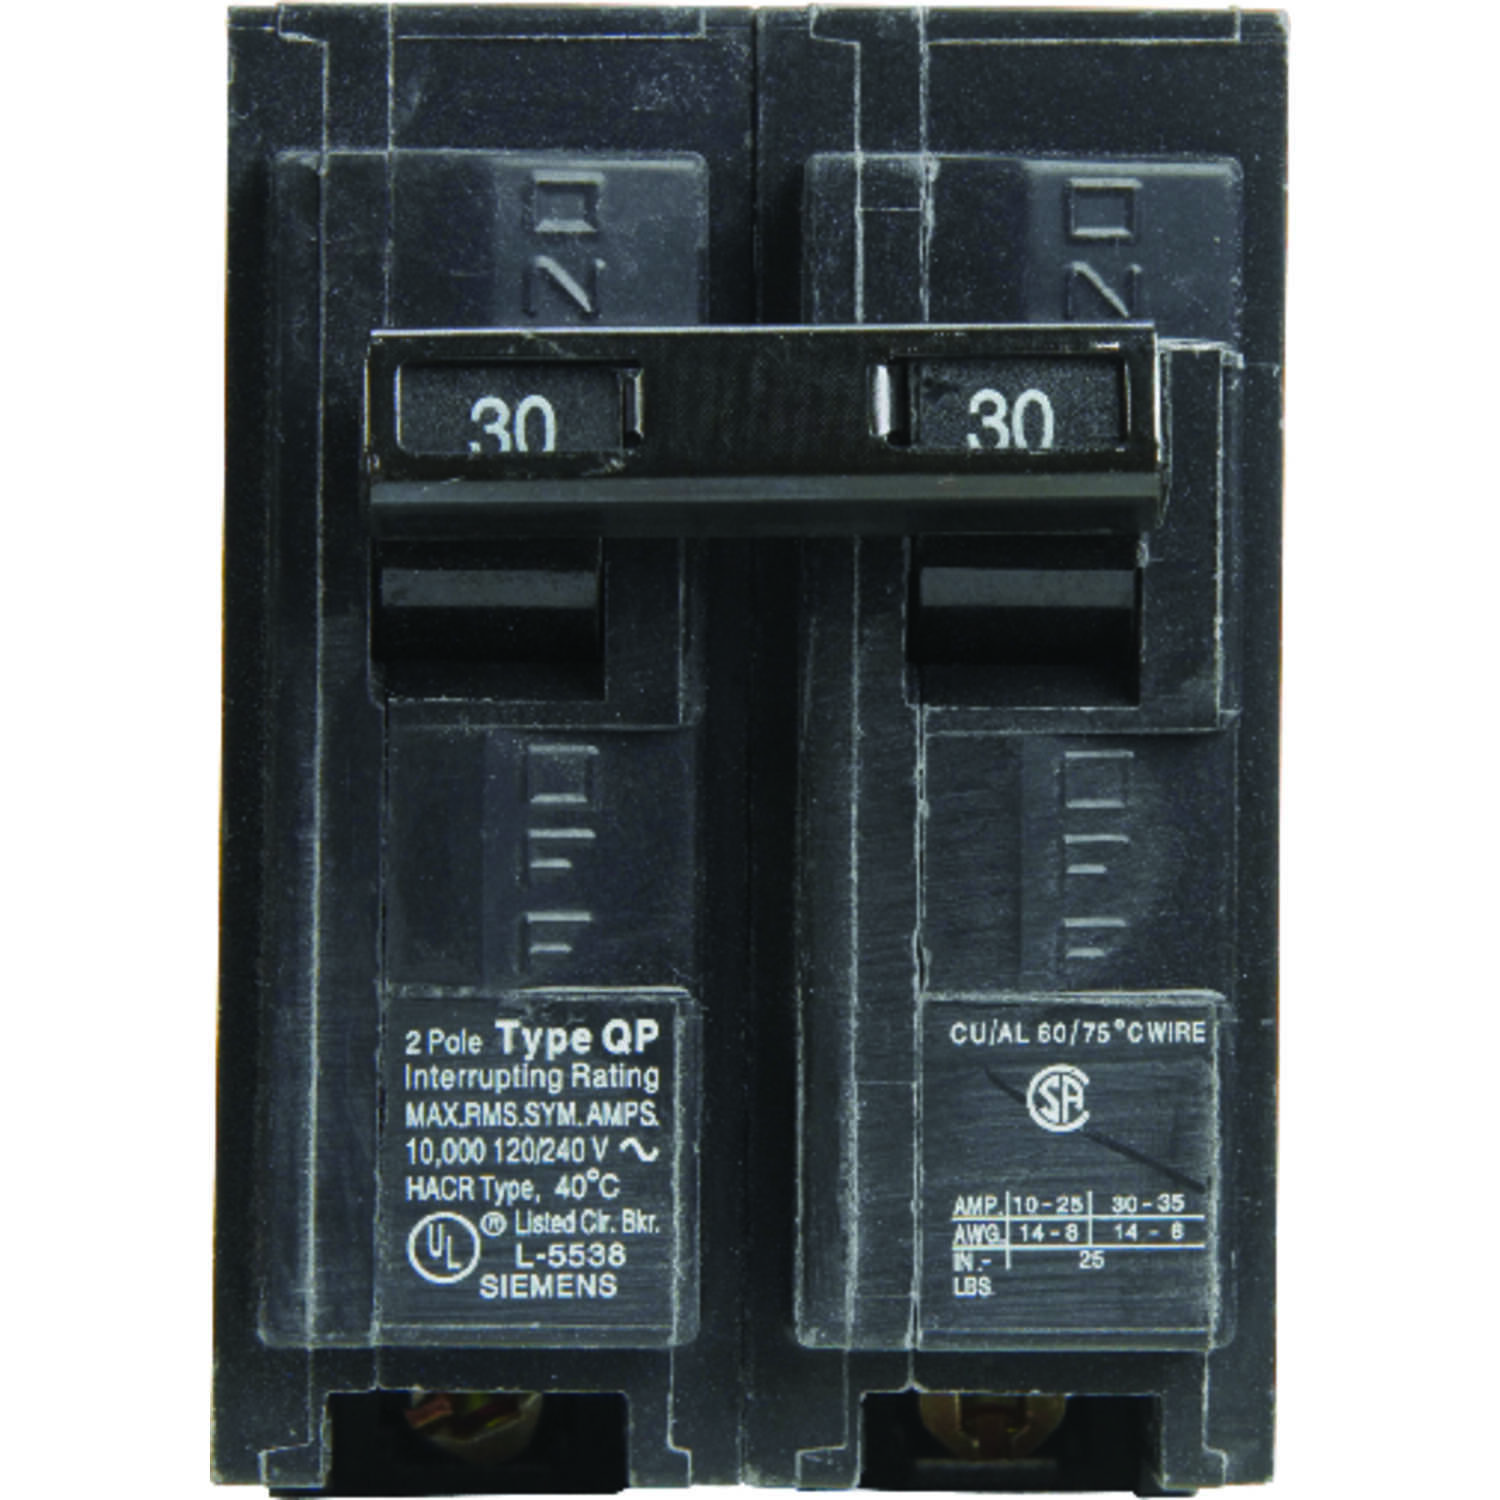 Siemens HomeLine 30 amps Double Pole 2 Circuit Breaker - Ace